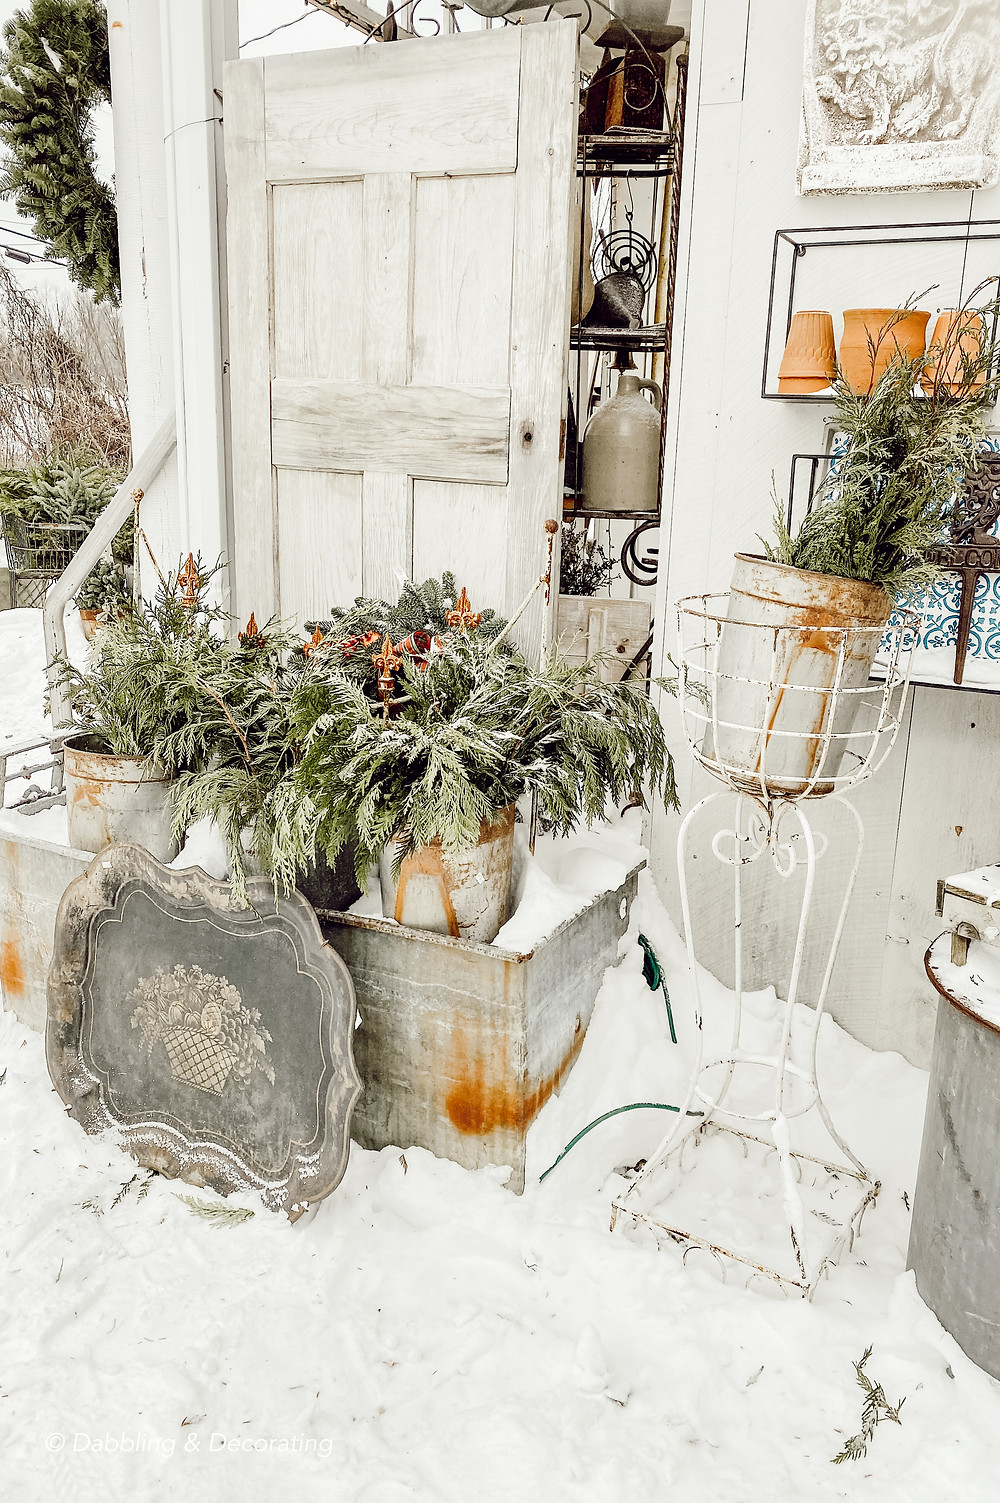 Thrifting in Winter's Snow